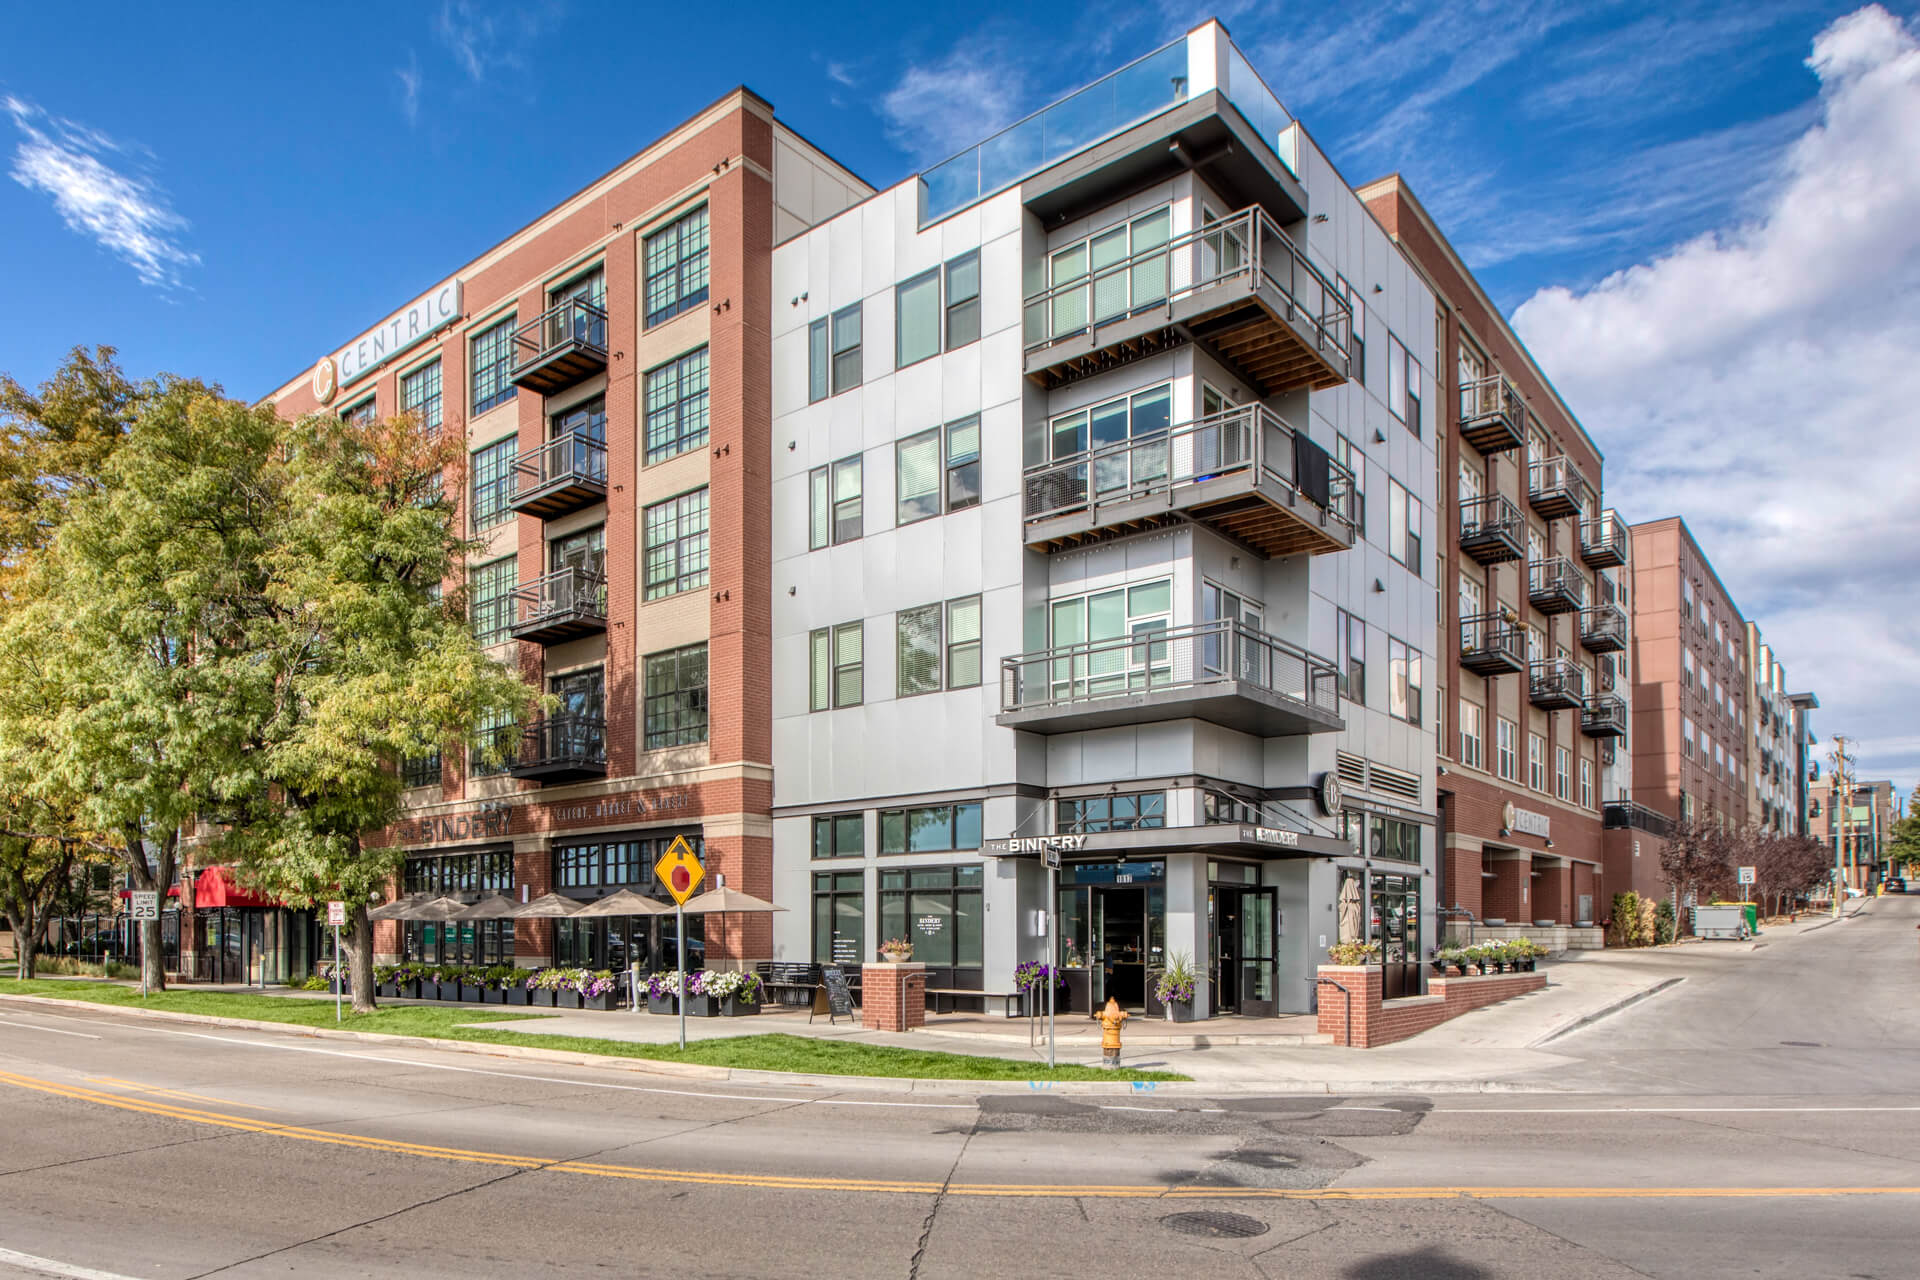 Street view of building at Centric Lohi by Windsor, Denver, CO